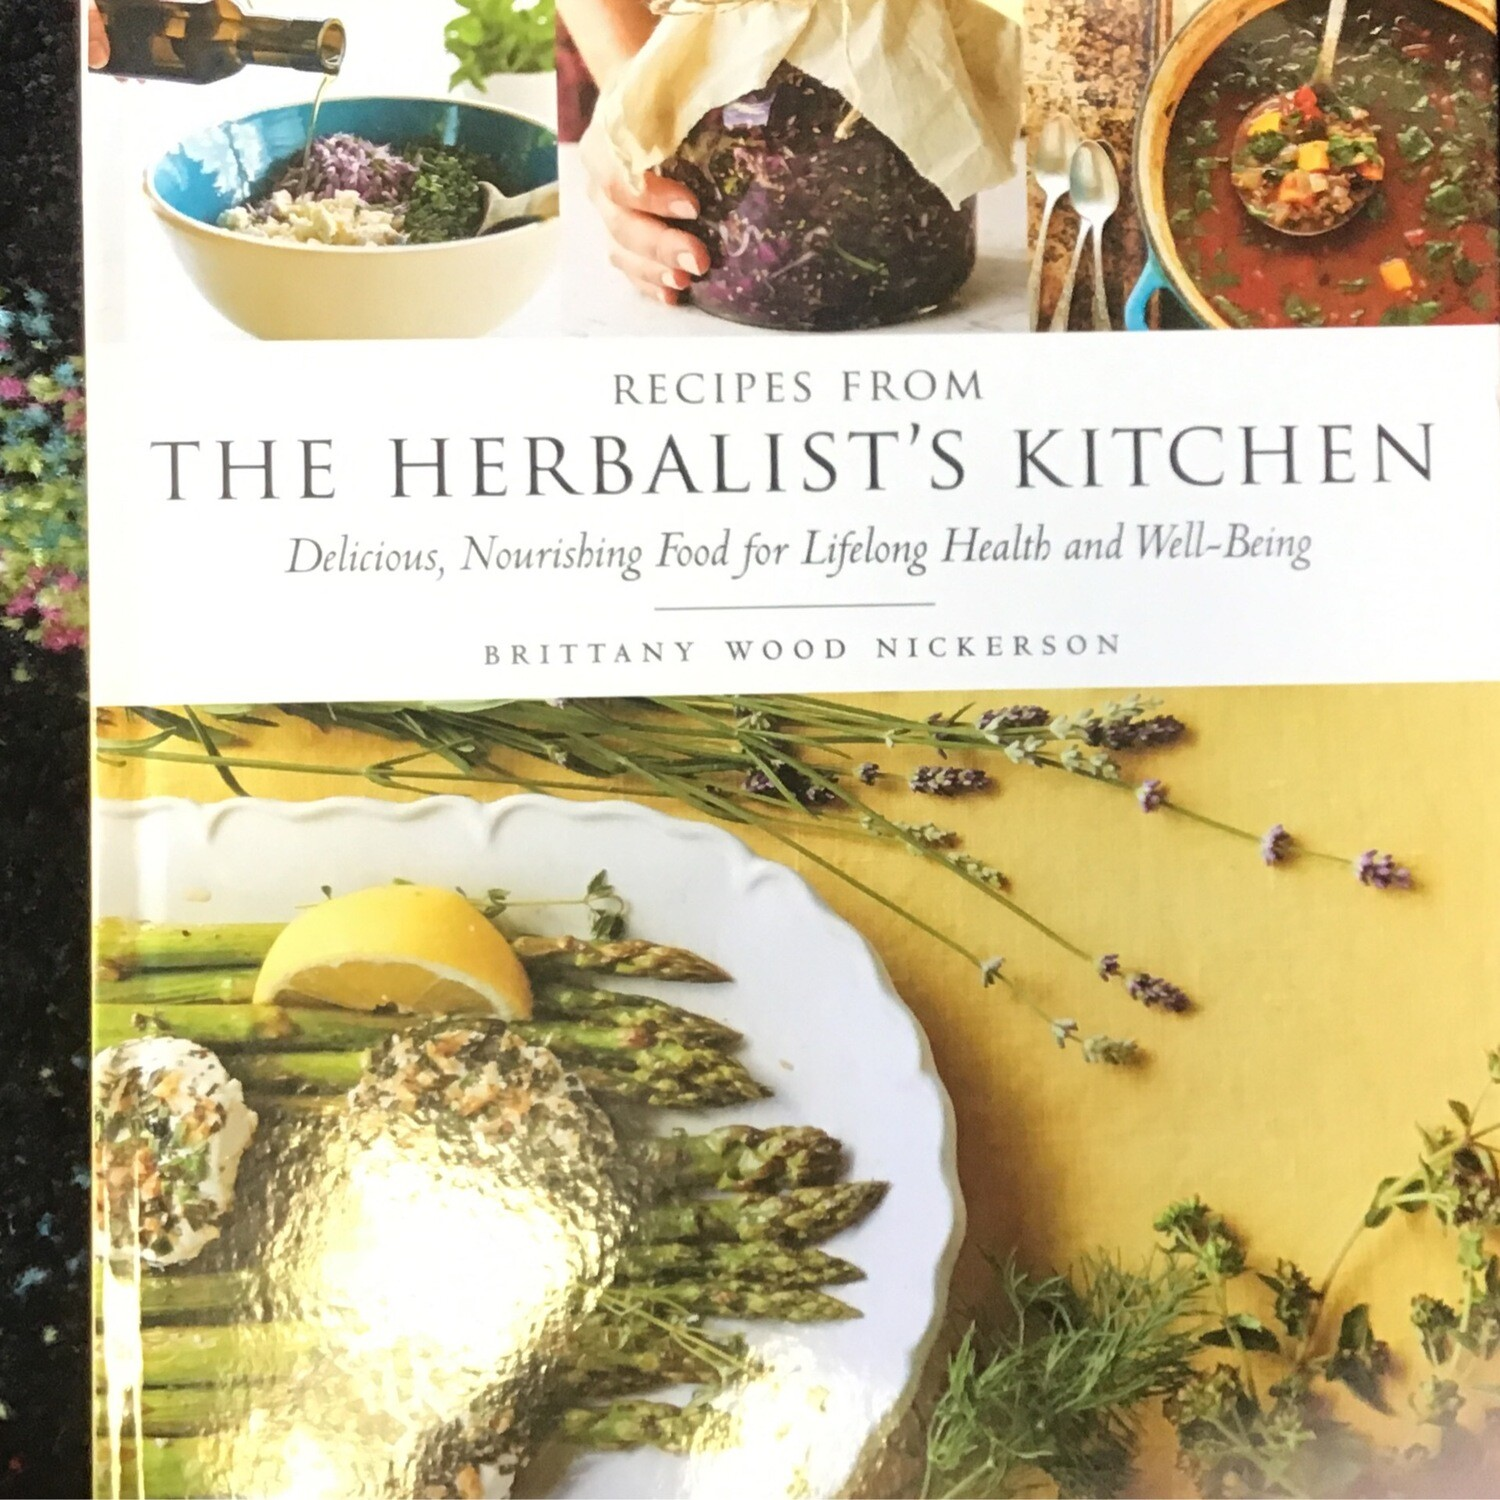 The Herbalist's Kitchen by Brittany Wood Nickerson